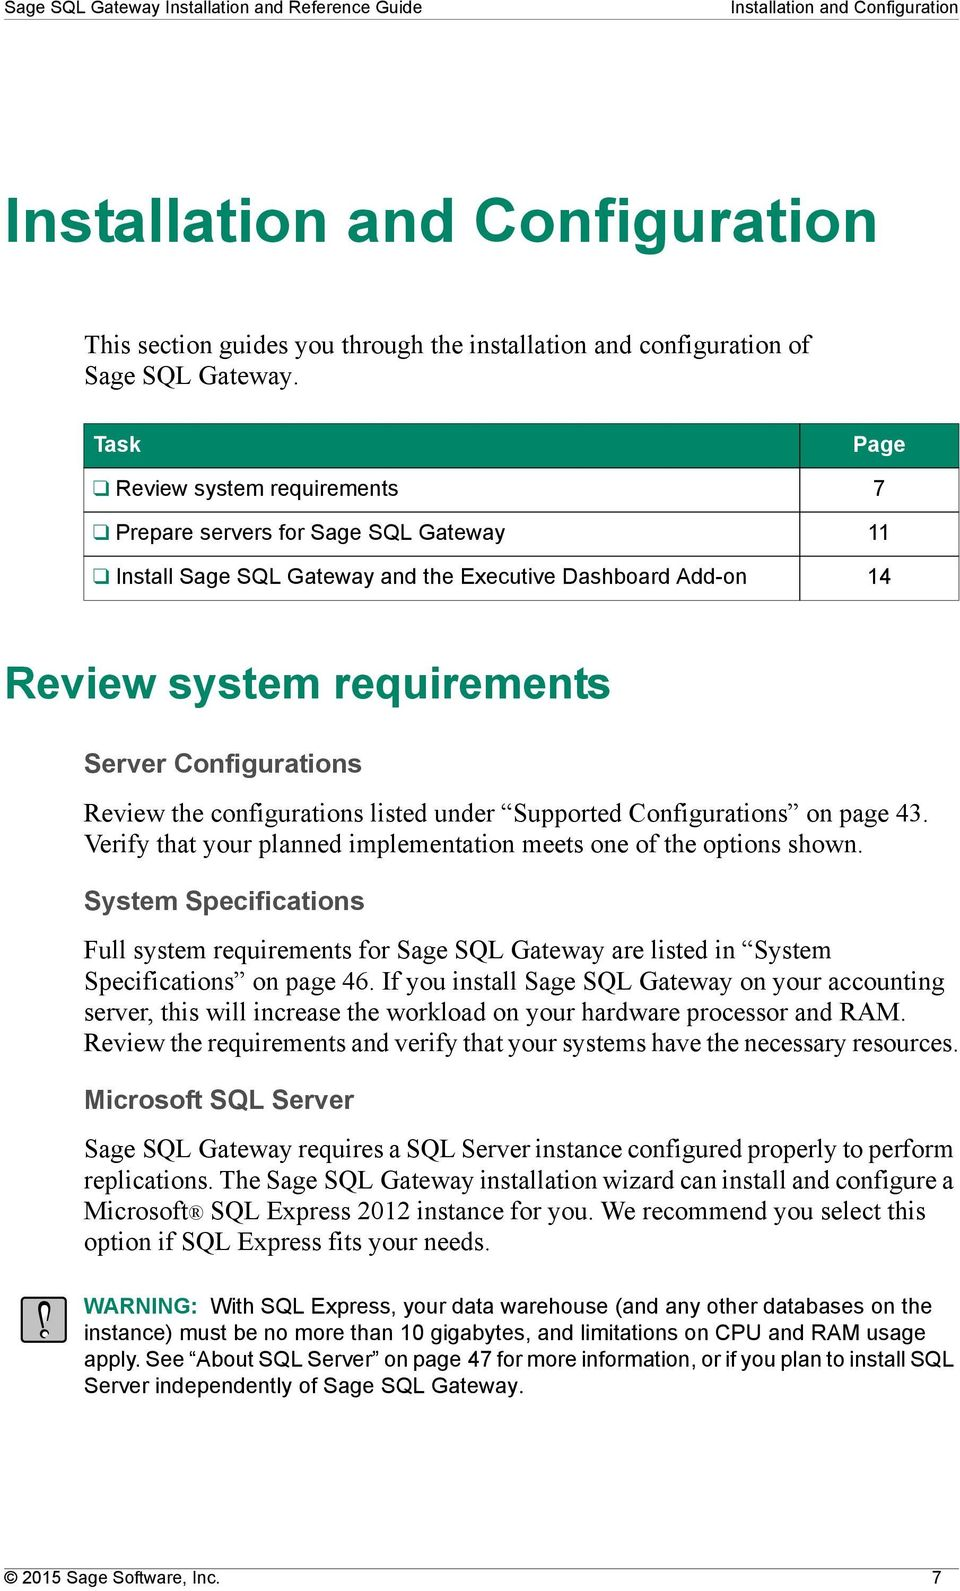 the configurations listed under Supported Configurations on page 43. Verify that your planned implementation meets one of the options shown.